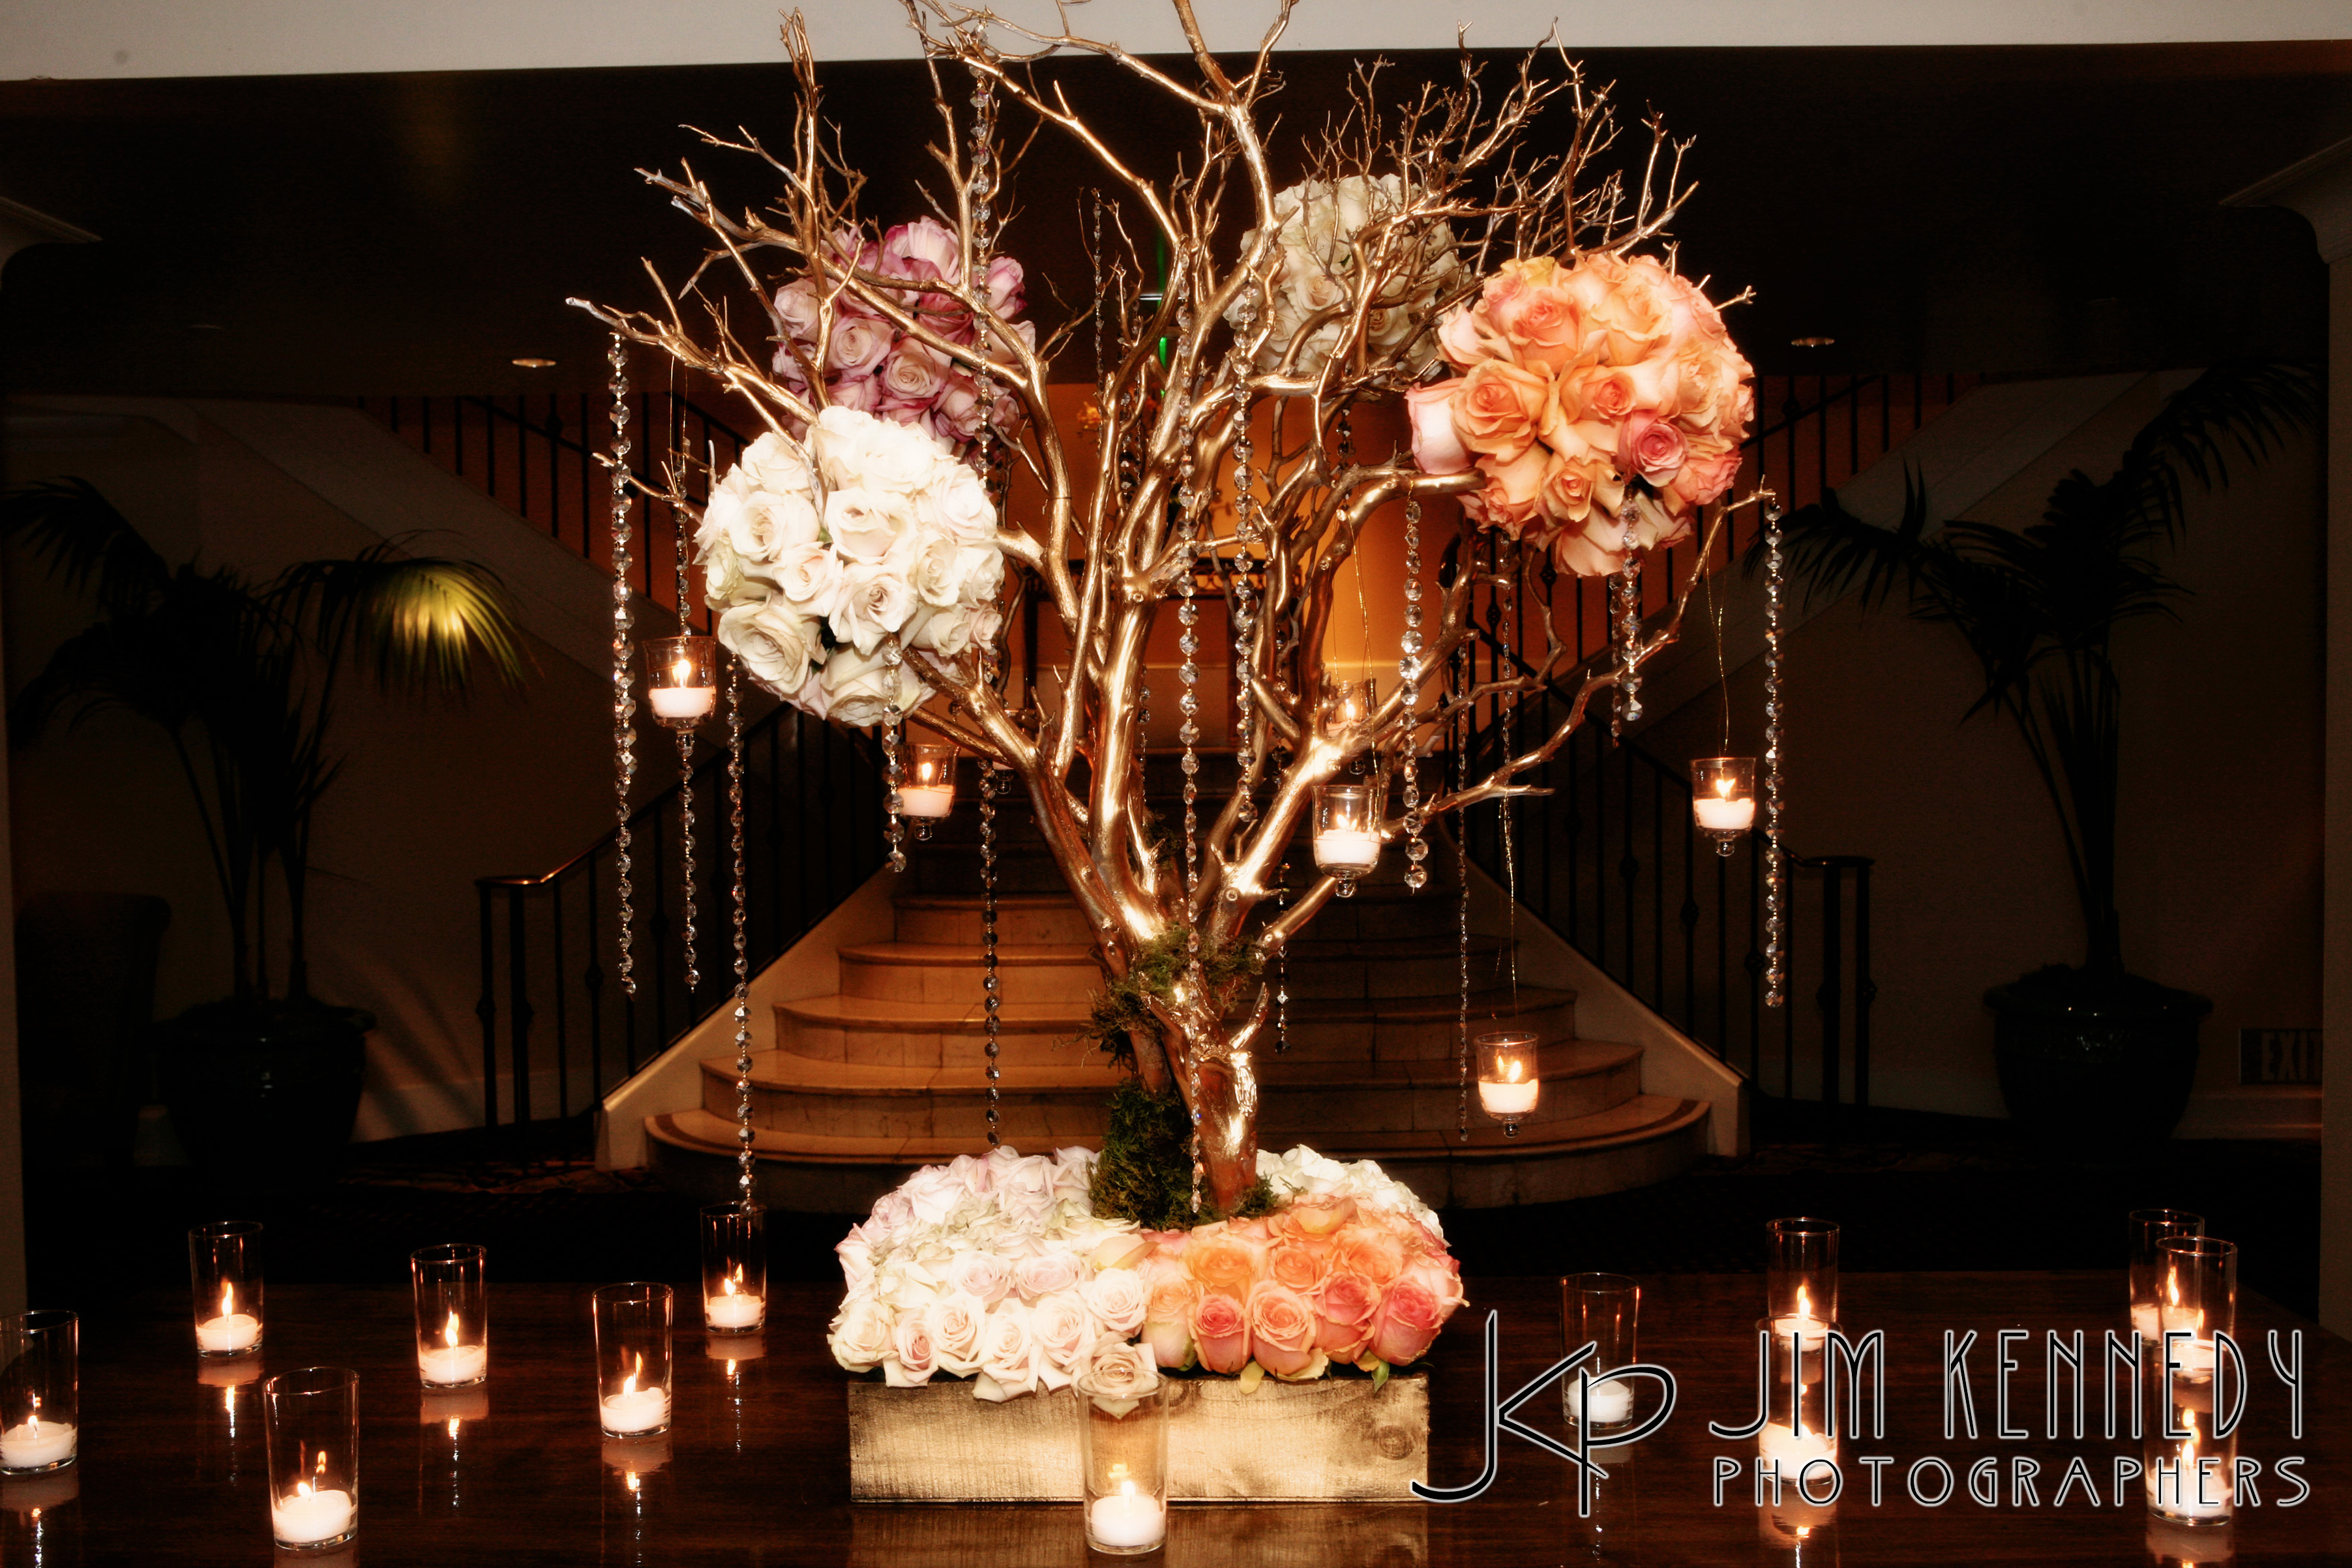 Flowers & Decor, gold, Centerpieces, Candles, Flowers, Centerpiece, Romantic, Placecard, Manzanita, Regal